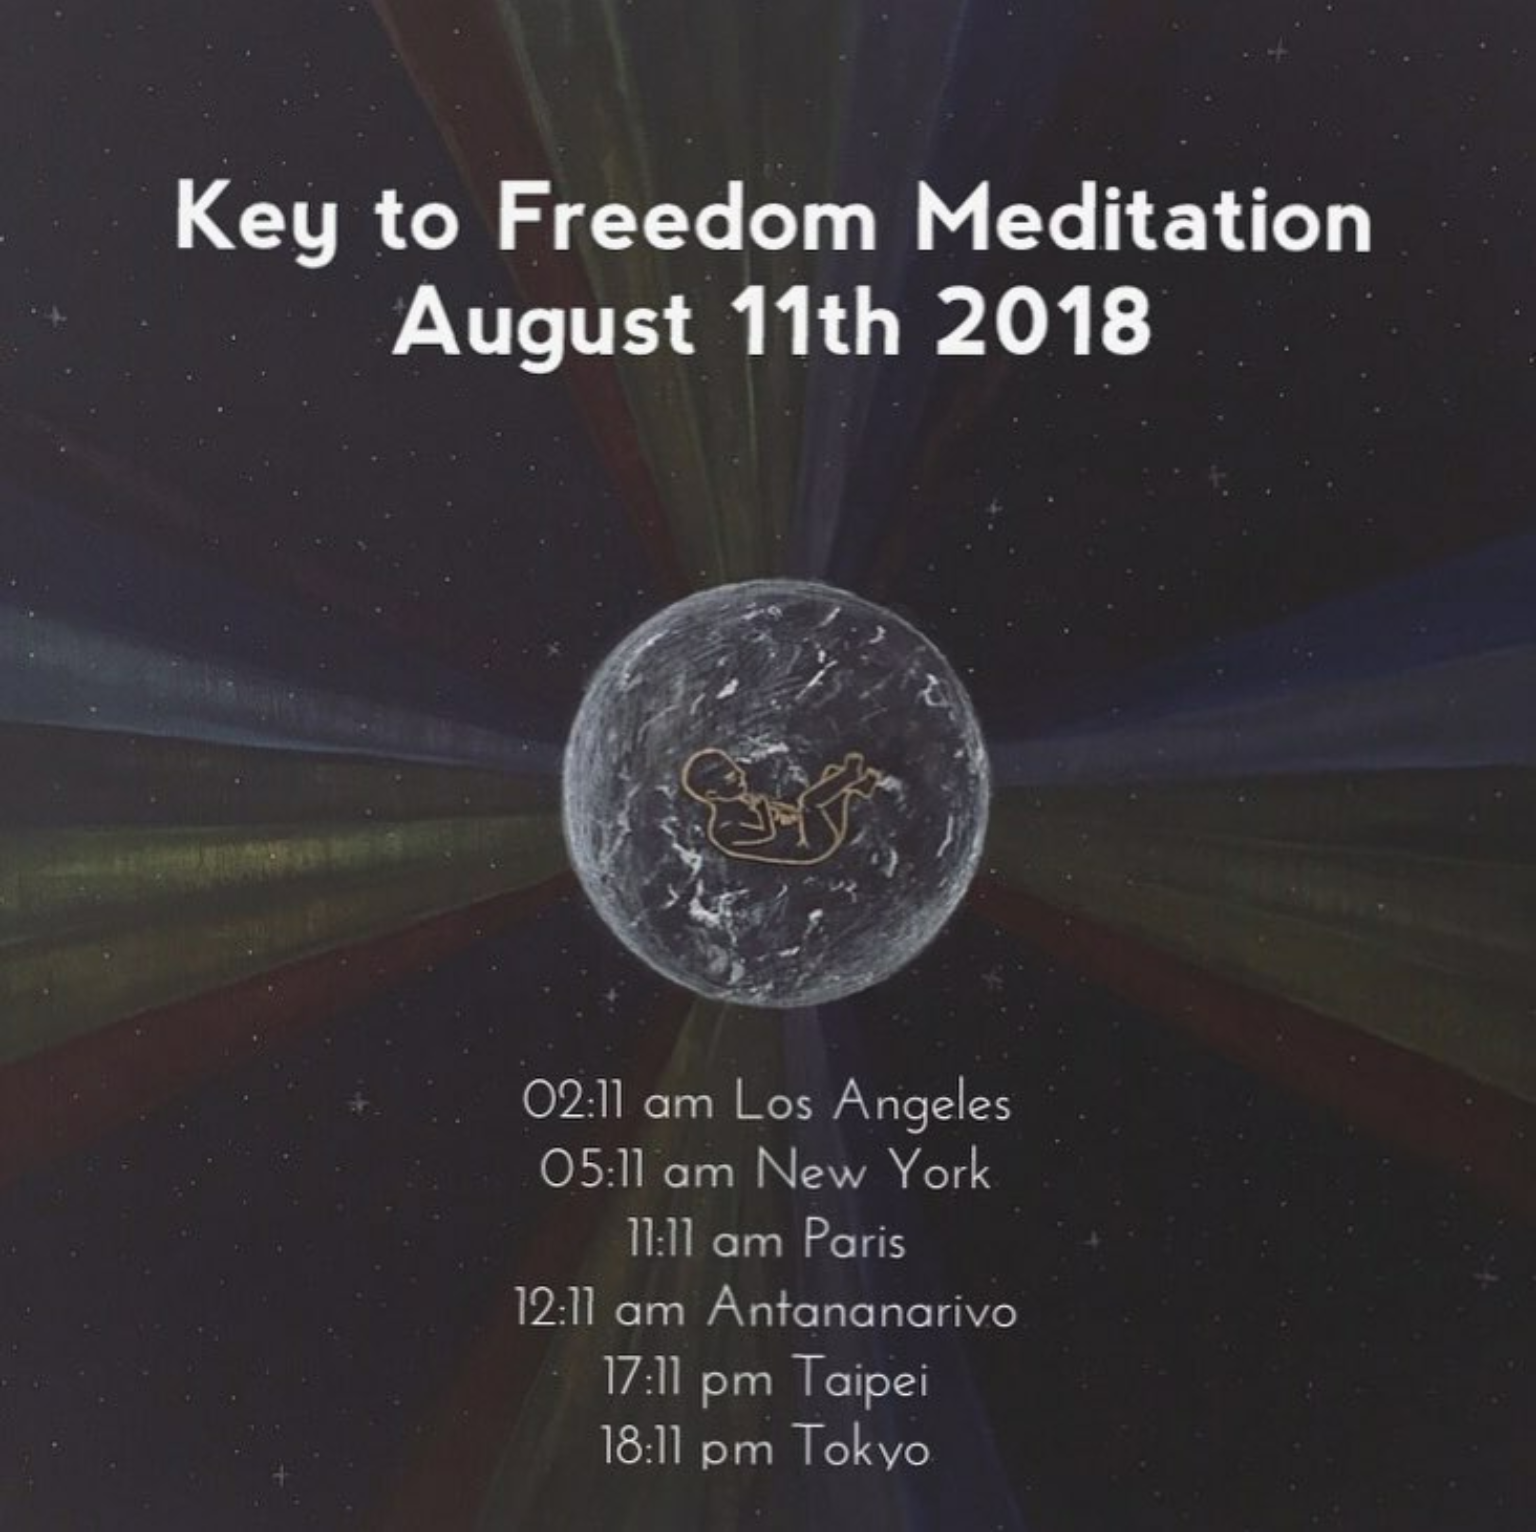 "Illustration by Fanja Ralaimaro (Instagram: @urbanminimalistokyo)   ""Key to Freedom Meditation""  On August 11th 2018 (2018-08-11)  ðŸ™�ðŸ�¾ðŸ'šðŸŒ¿  Let's come Together and Unite for Planetary Liberation and Peace on August 11th 2018.  We are, you and me, all together, able to change things. We have the Power to make this World a better place. We just need to be fully aware of it.  The Solar eclipse on August 11th is a crucial time to create a portal through which we will unify our consciousness and enlighten the energy field around the planet.  It is scientifically proven that Group Meditation helps decreasing drastically the percentage of criminality in the World. You and me, Together can actually help bringing the Event and Full Disclosure closer to us:  http://thespiritscience.net/2015/06/18/studies-show-group-meditation-lowers-crime-suicide-deaths-in-surrounding-areas/  It is a very important time for us to raise our planet's positive Energy and to radically improve the Lives of Everyone on Earth.  We can reach the critical mass of 144,000 people doing this meditation! This will create a massive healing chain reaction in the energy field worldwide.  The meditation will last 15 minutes. 🌿 You can follow the instructions of this Meditation below in the comments. 🌿  You can participate from wherever you are. From home, from work, in the train, from school, in a park, in your coffee house, etc.  Check the time of the meditation for your zone here: 🌿  https://www.timeanddate.com/worldclock/fixedtime.html?msg=KEY+TO+FREEDOM&iso=20180811T111111&p1=195&am=15 🌿 For more detailed informations about this Meditation and to understand more about its purpose, please, read the link below:  http://2012portal.blogspot.com/2018/07/make-this-viral-key-to-freedom.html?m=1  Share the message to the World! 🙌ðŸ�½ðŸŒŽðŸŒ�ðŸŒ�☀ï¸�  Share the post with your friends, family, your colleagues, your neighbors, etc. Copy and share it to Everyone you know on Facebook, Twitter, Instagram, etc.  Let's come together.  It's Time to Unite.  Light ðŸ™�ðŸ�¾ðŸ'šðŸŒ¿  Fanja"